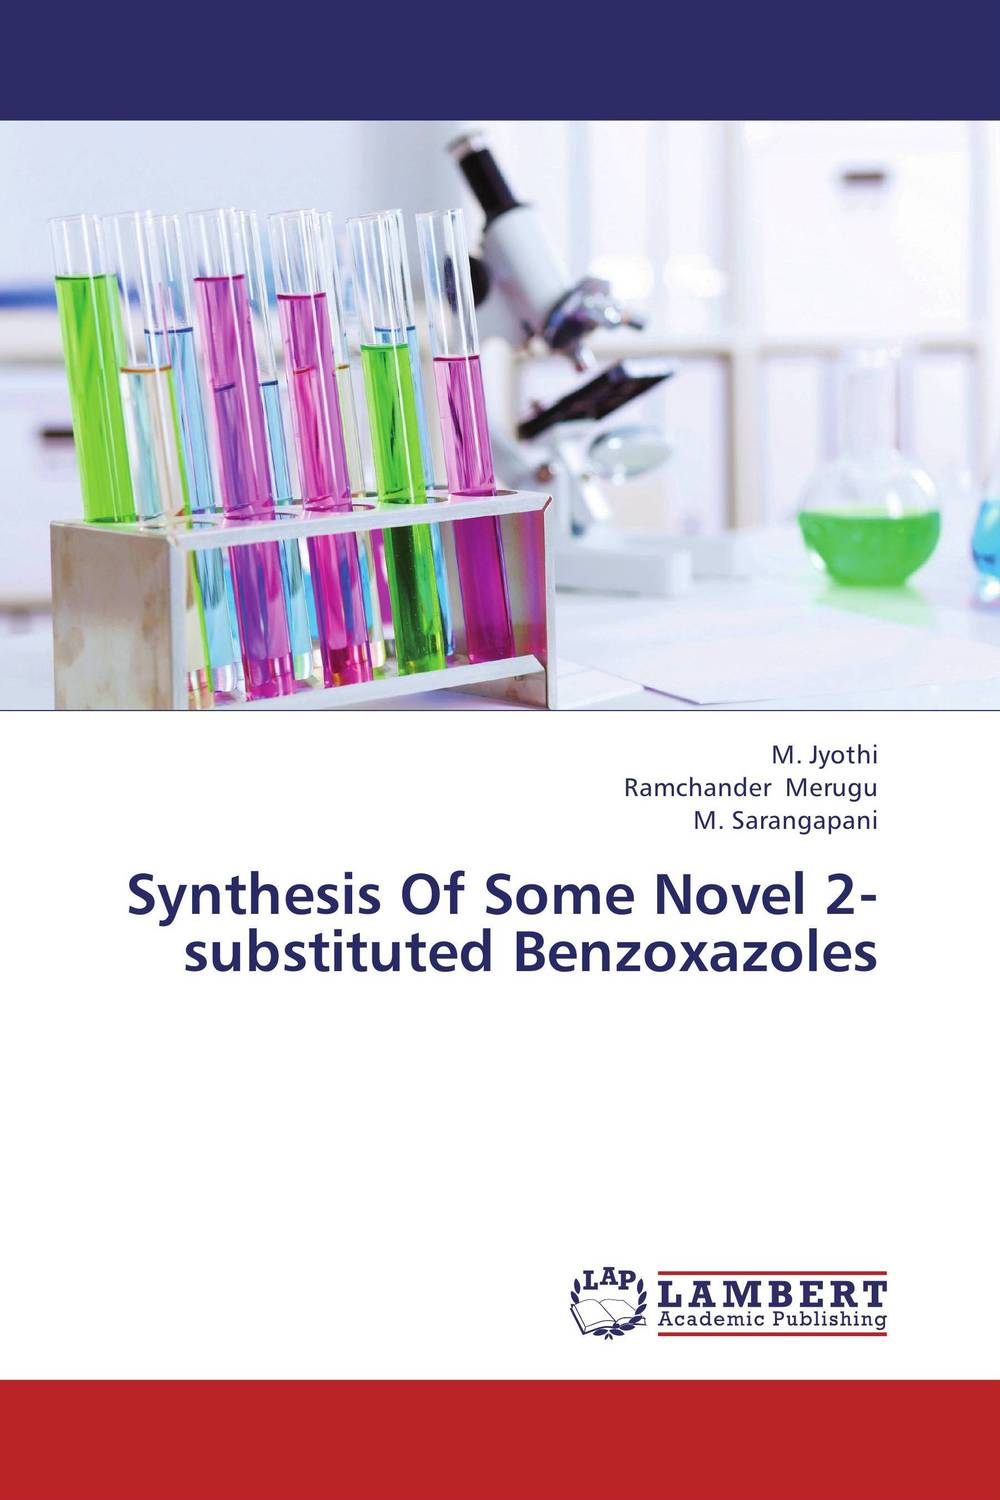 Synthesis Of Some Novel 2-substituted Benzoxazoles the lonely polygamist – a novel